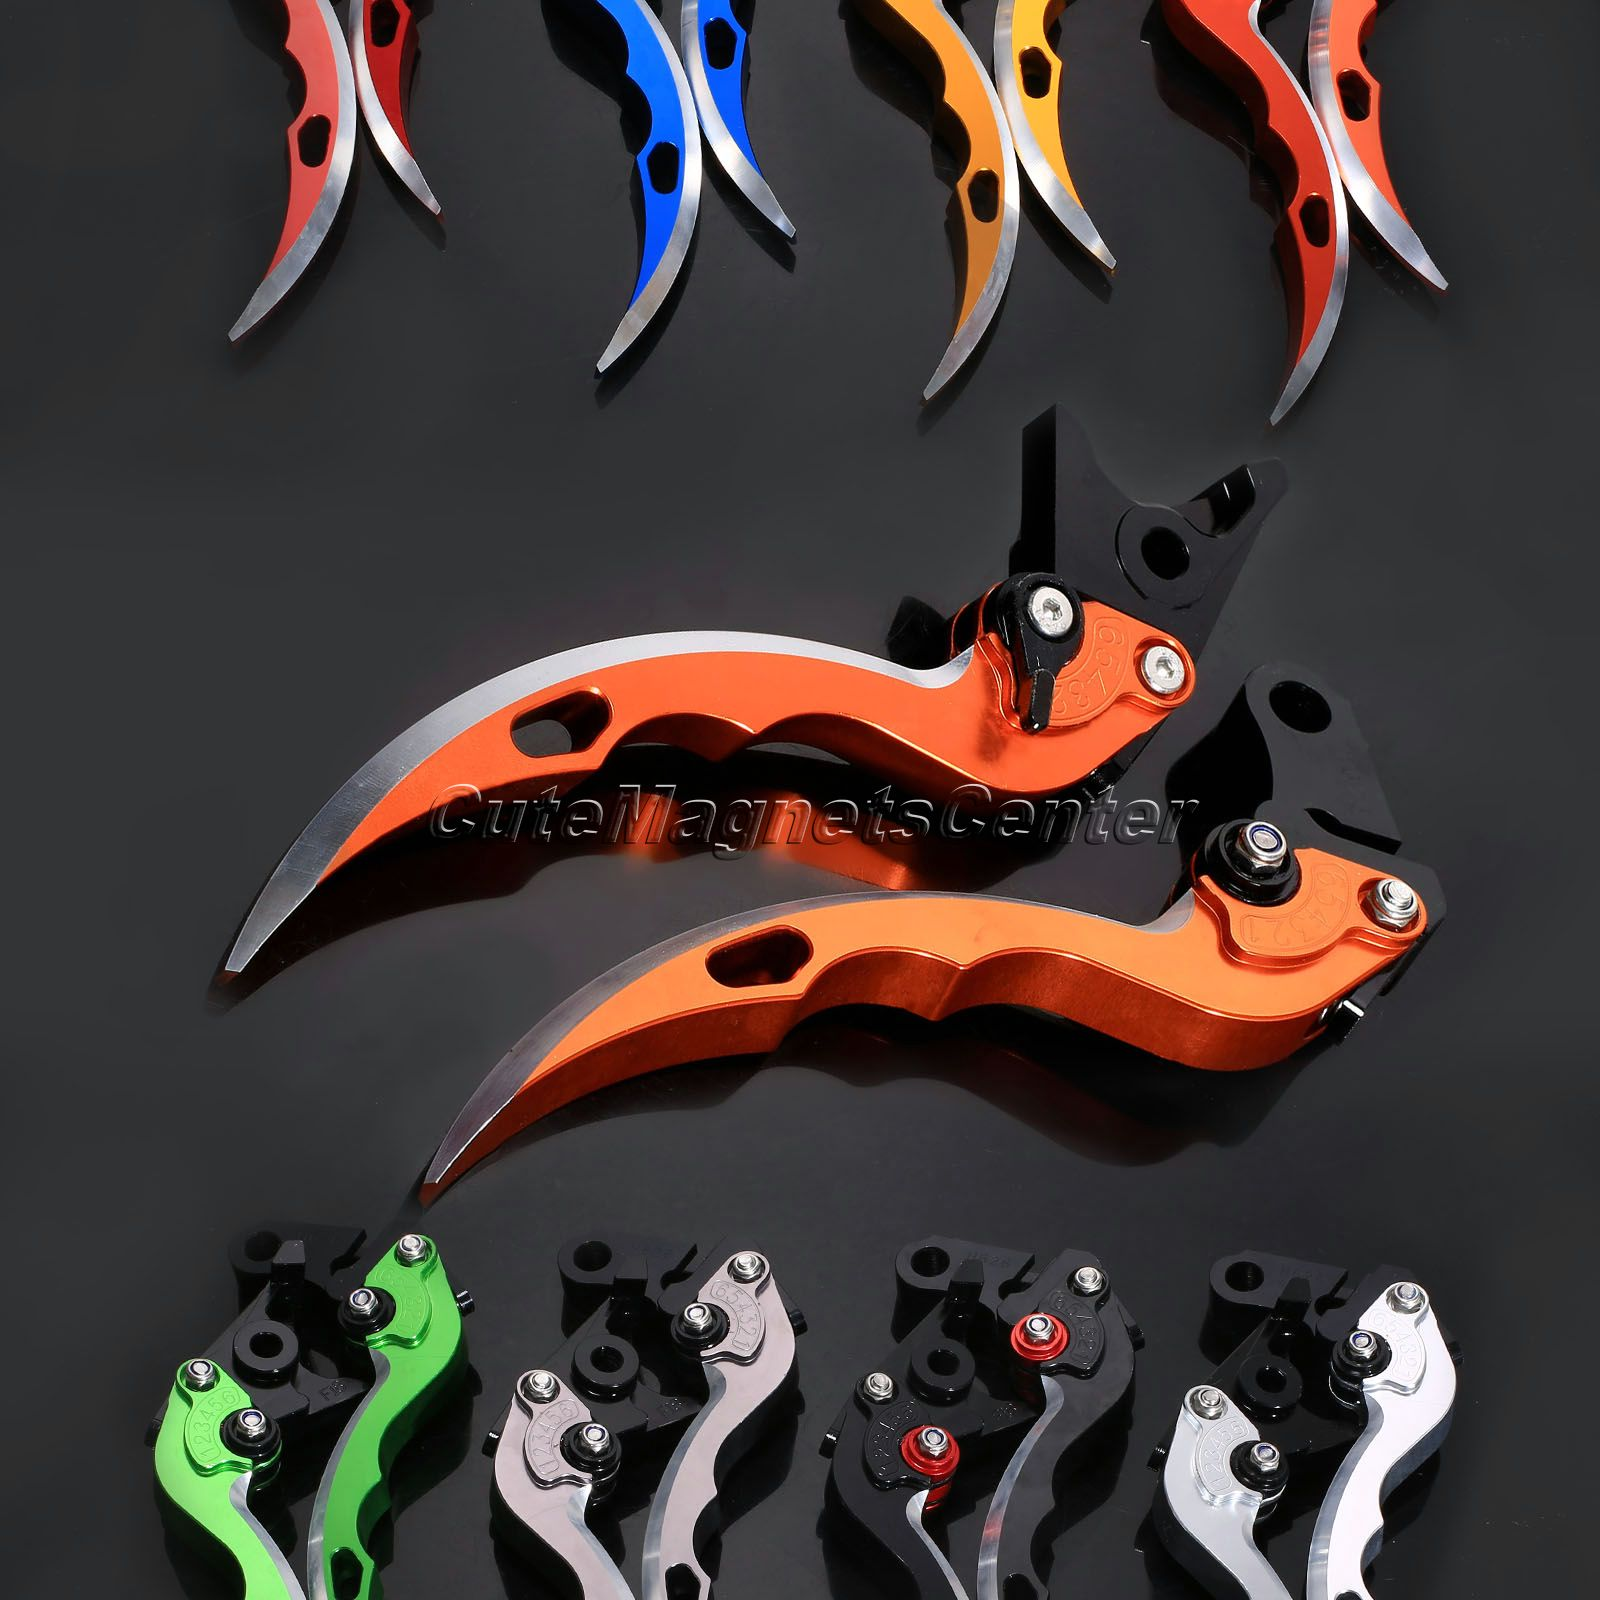 For KTM 690 Enduro R 2014 (DB-12/A-90) 8 Color CNC Adjustable Levers Brake Clutch Levers Blade Motorcycle Brakes Accessories fx cnc motorcycles folding extendable brake clutch levers aluminum adjustable ktm 690 duke smc smcr 690 enduro r 2014 2017